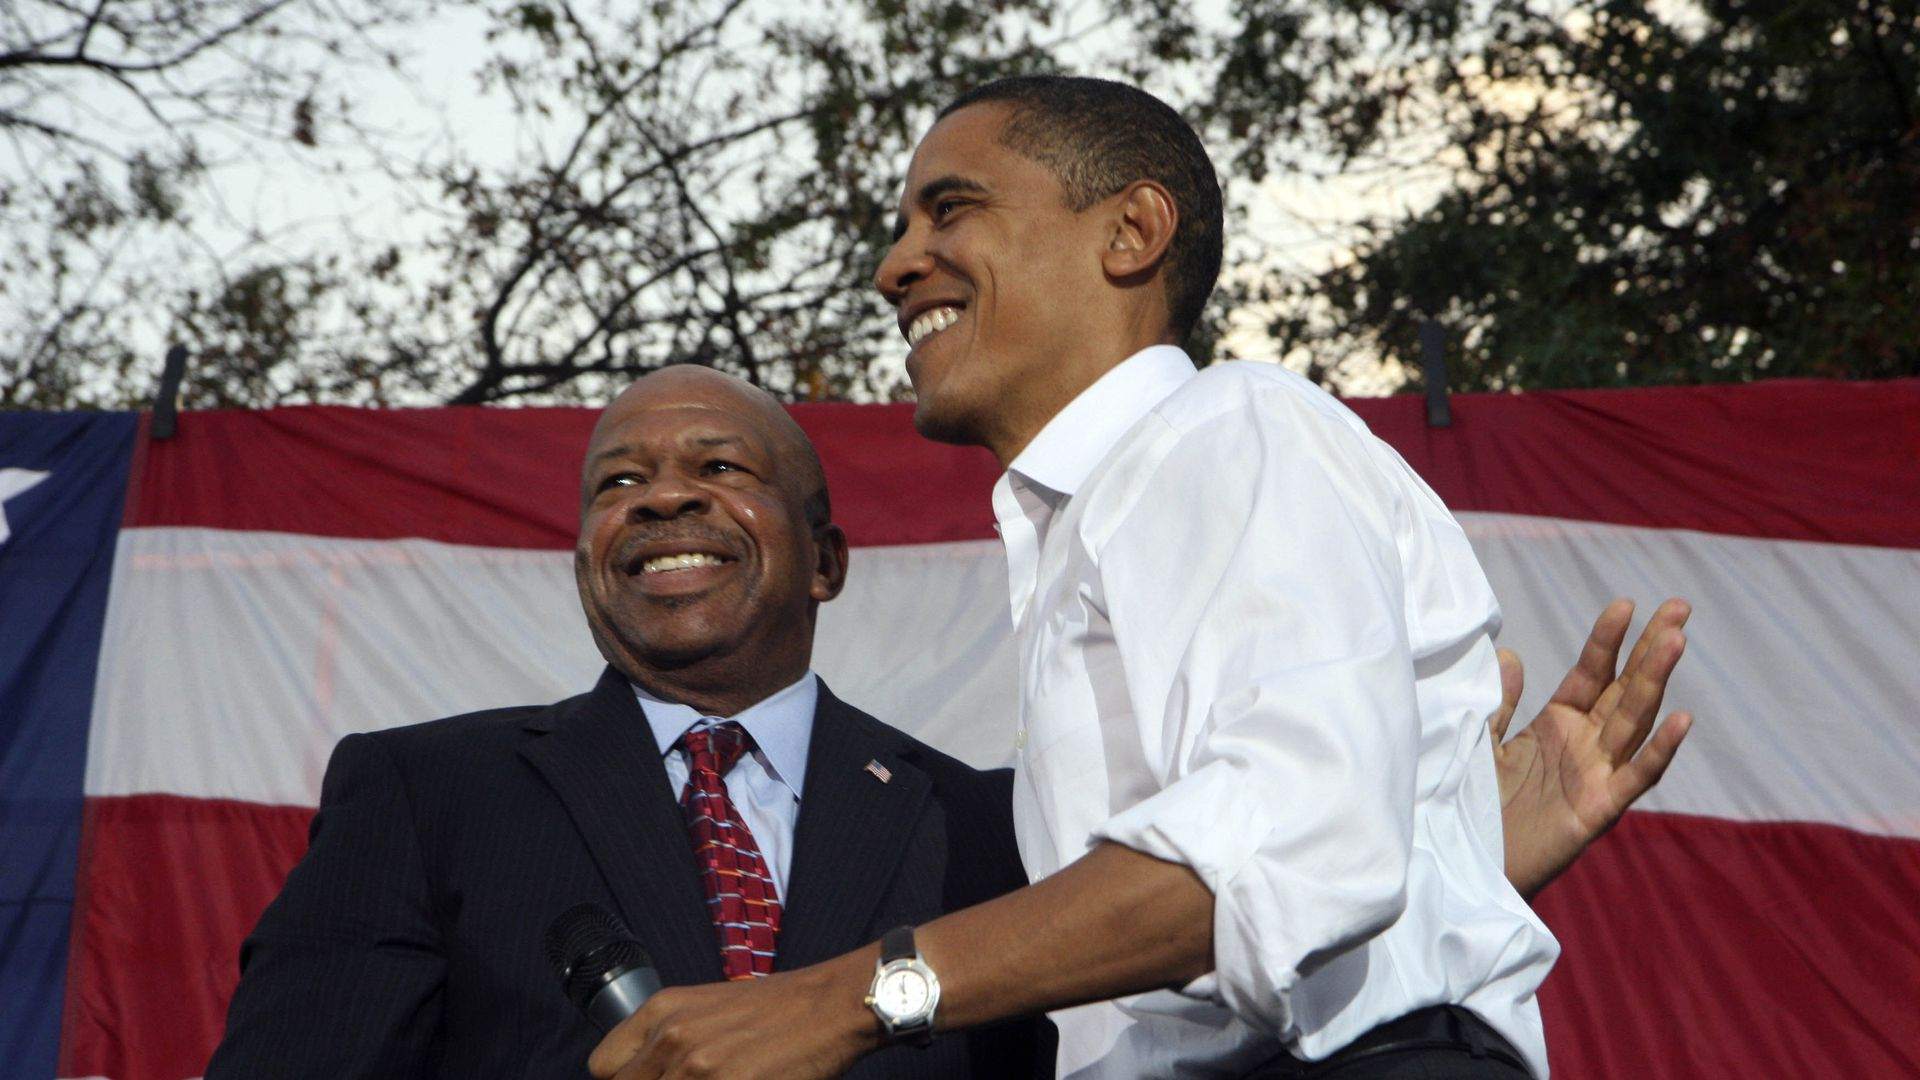 Elijah Cummings and Obama